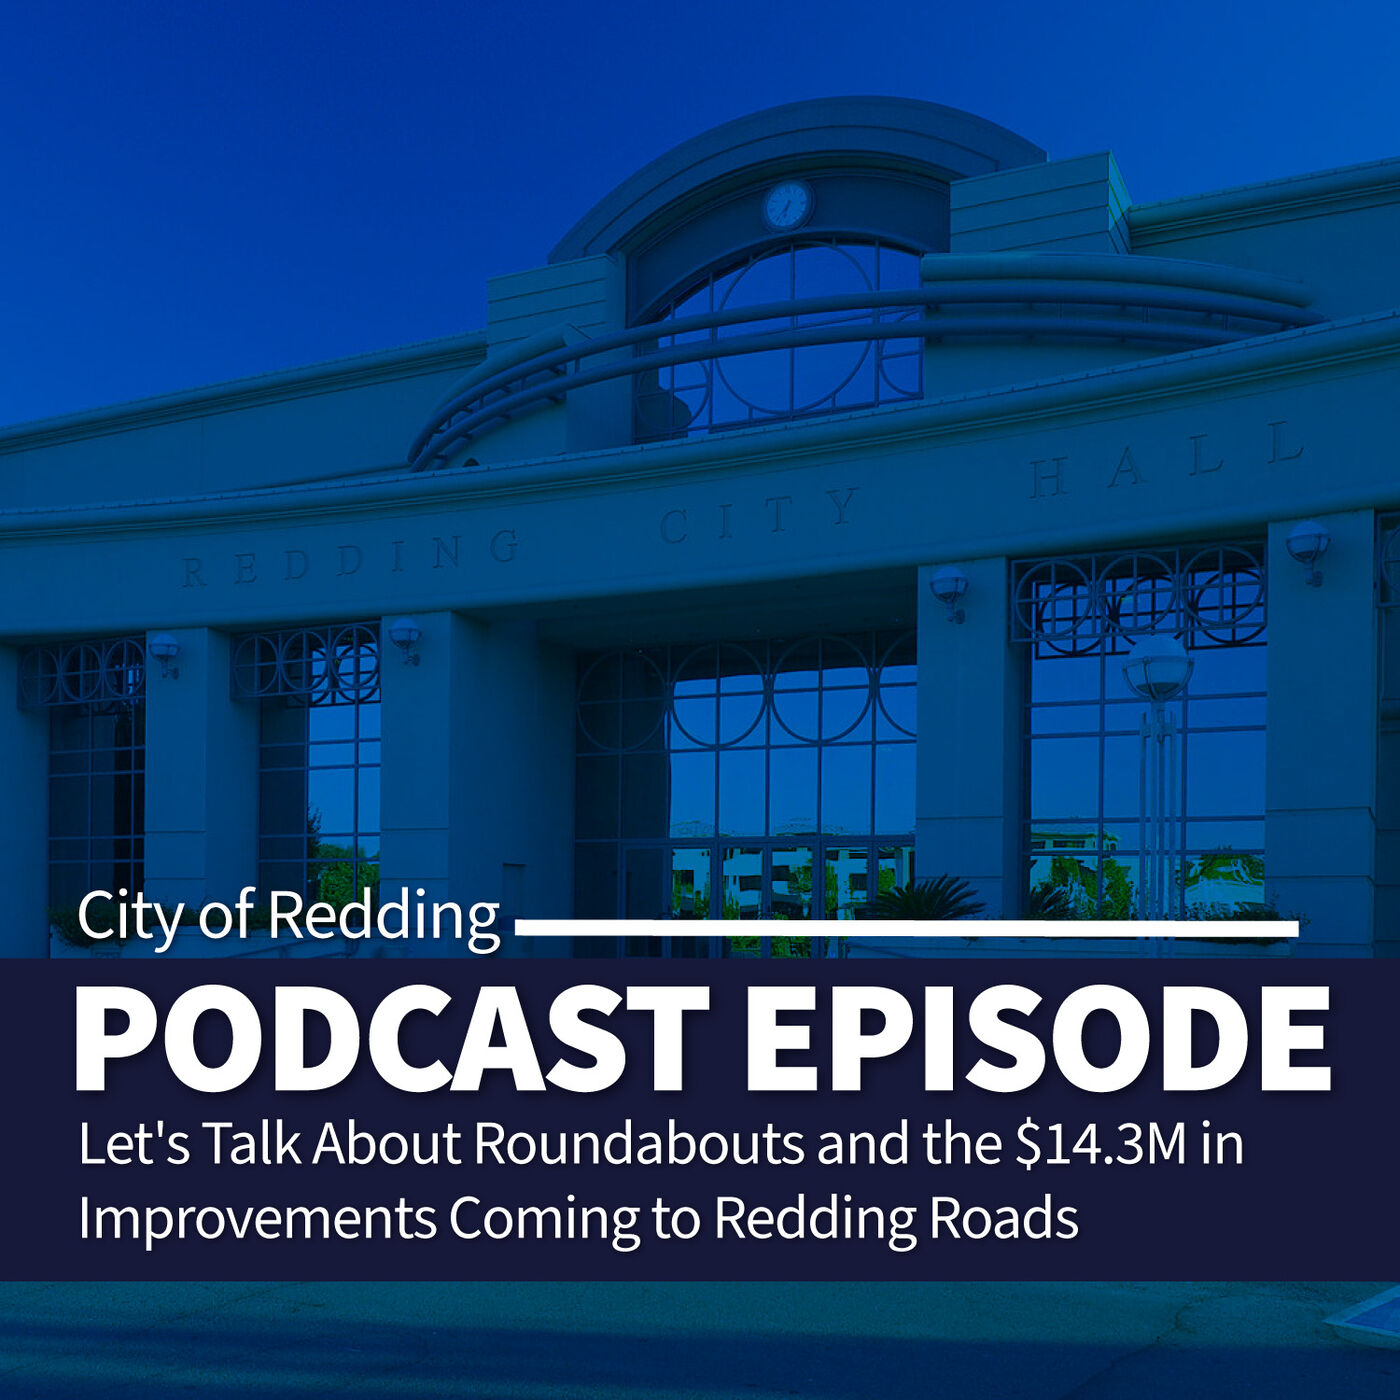 Let's Talk About Roundabouts and the $14.3M in Improvements Coming to Redding Roads